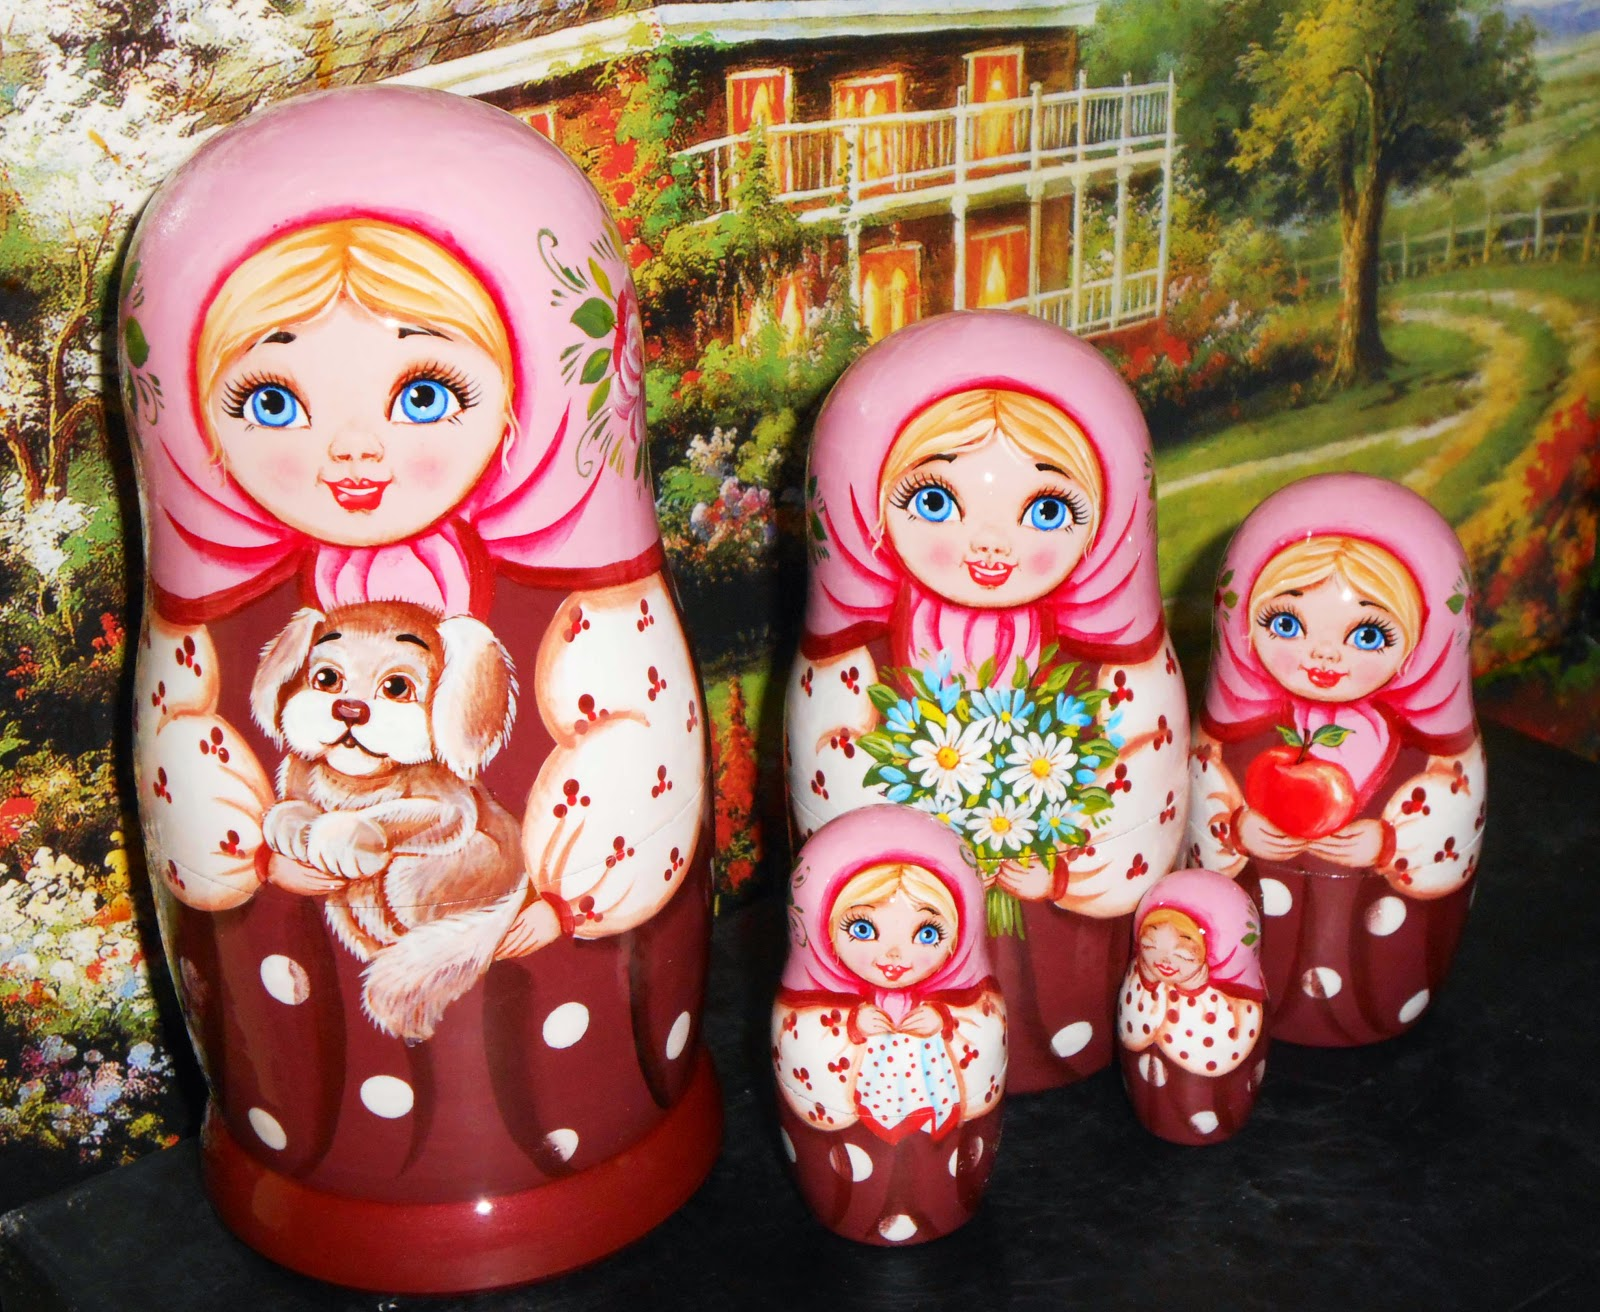 Nestung dolls un russian style buy at https://www.etsy.com/shop/Artworkshop1